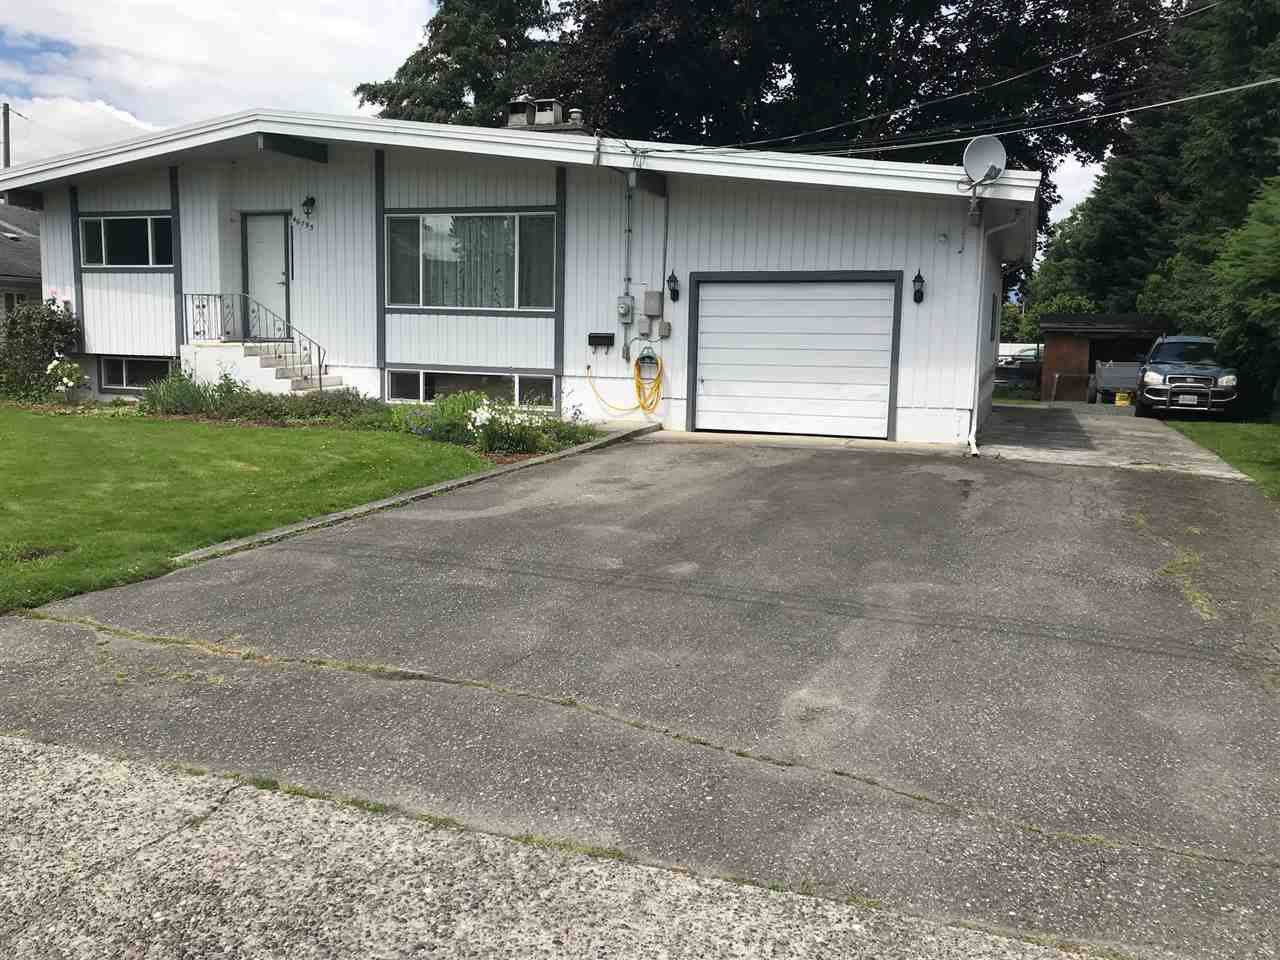 Main Photo: 46795 FIRST Avenue in Chilliwack: Chilliwack E Young-Yale House for sale : MLS®# R2470391